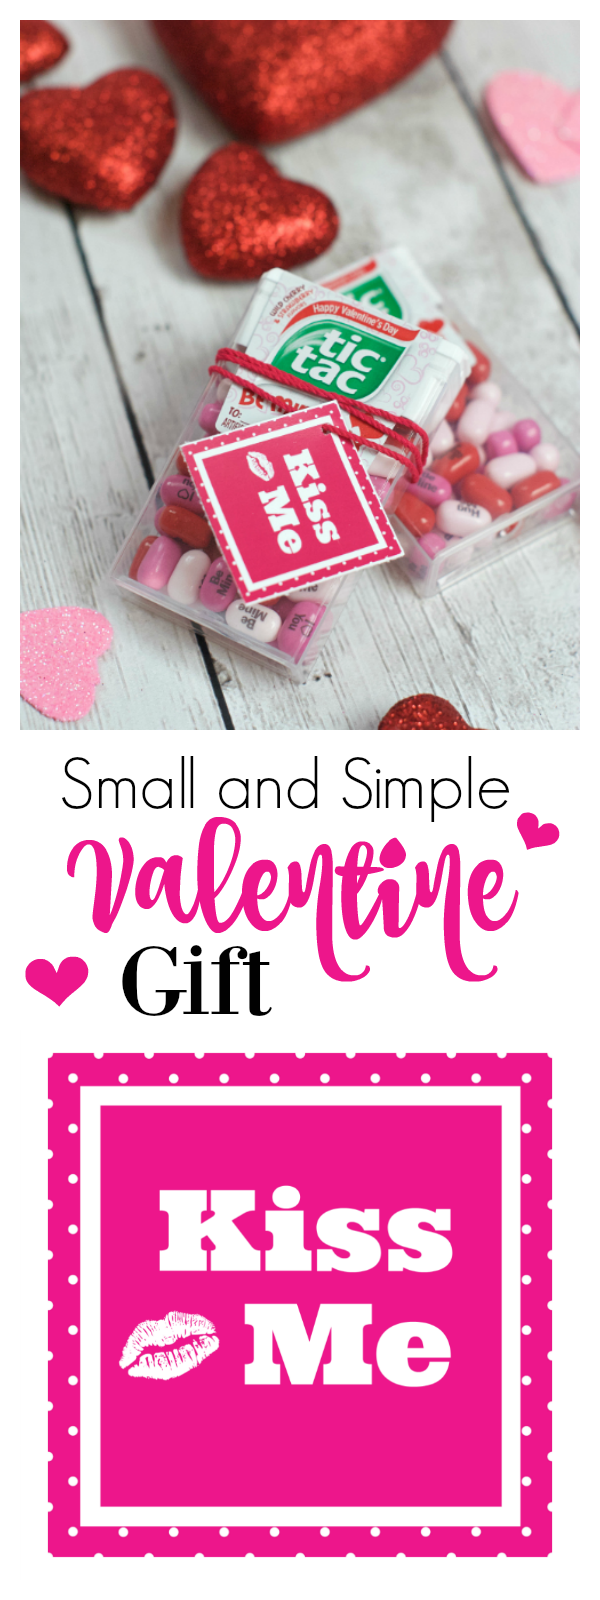 Small Valentine Gift Idea-Perfect to Leave for Him as a Small Surprise